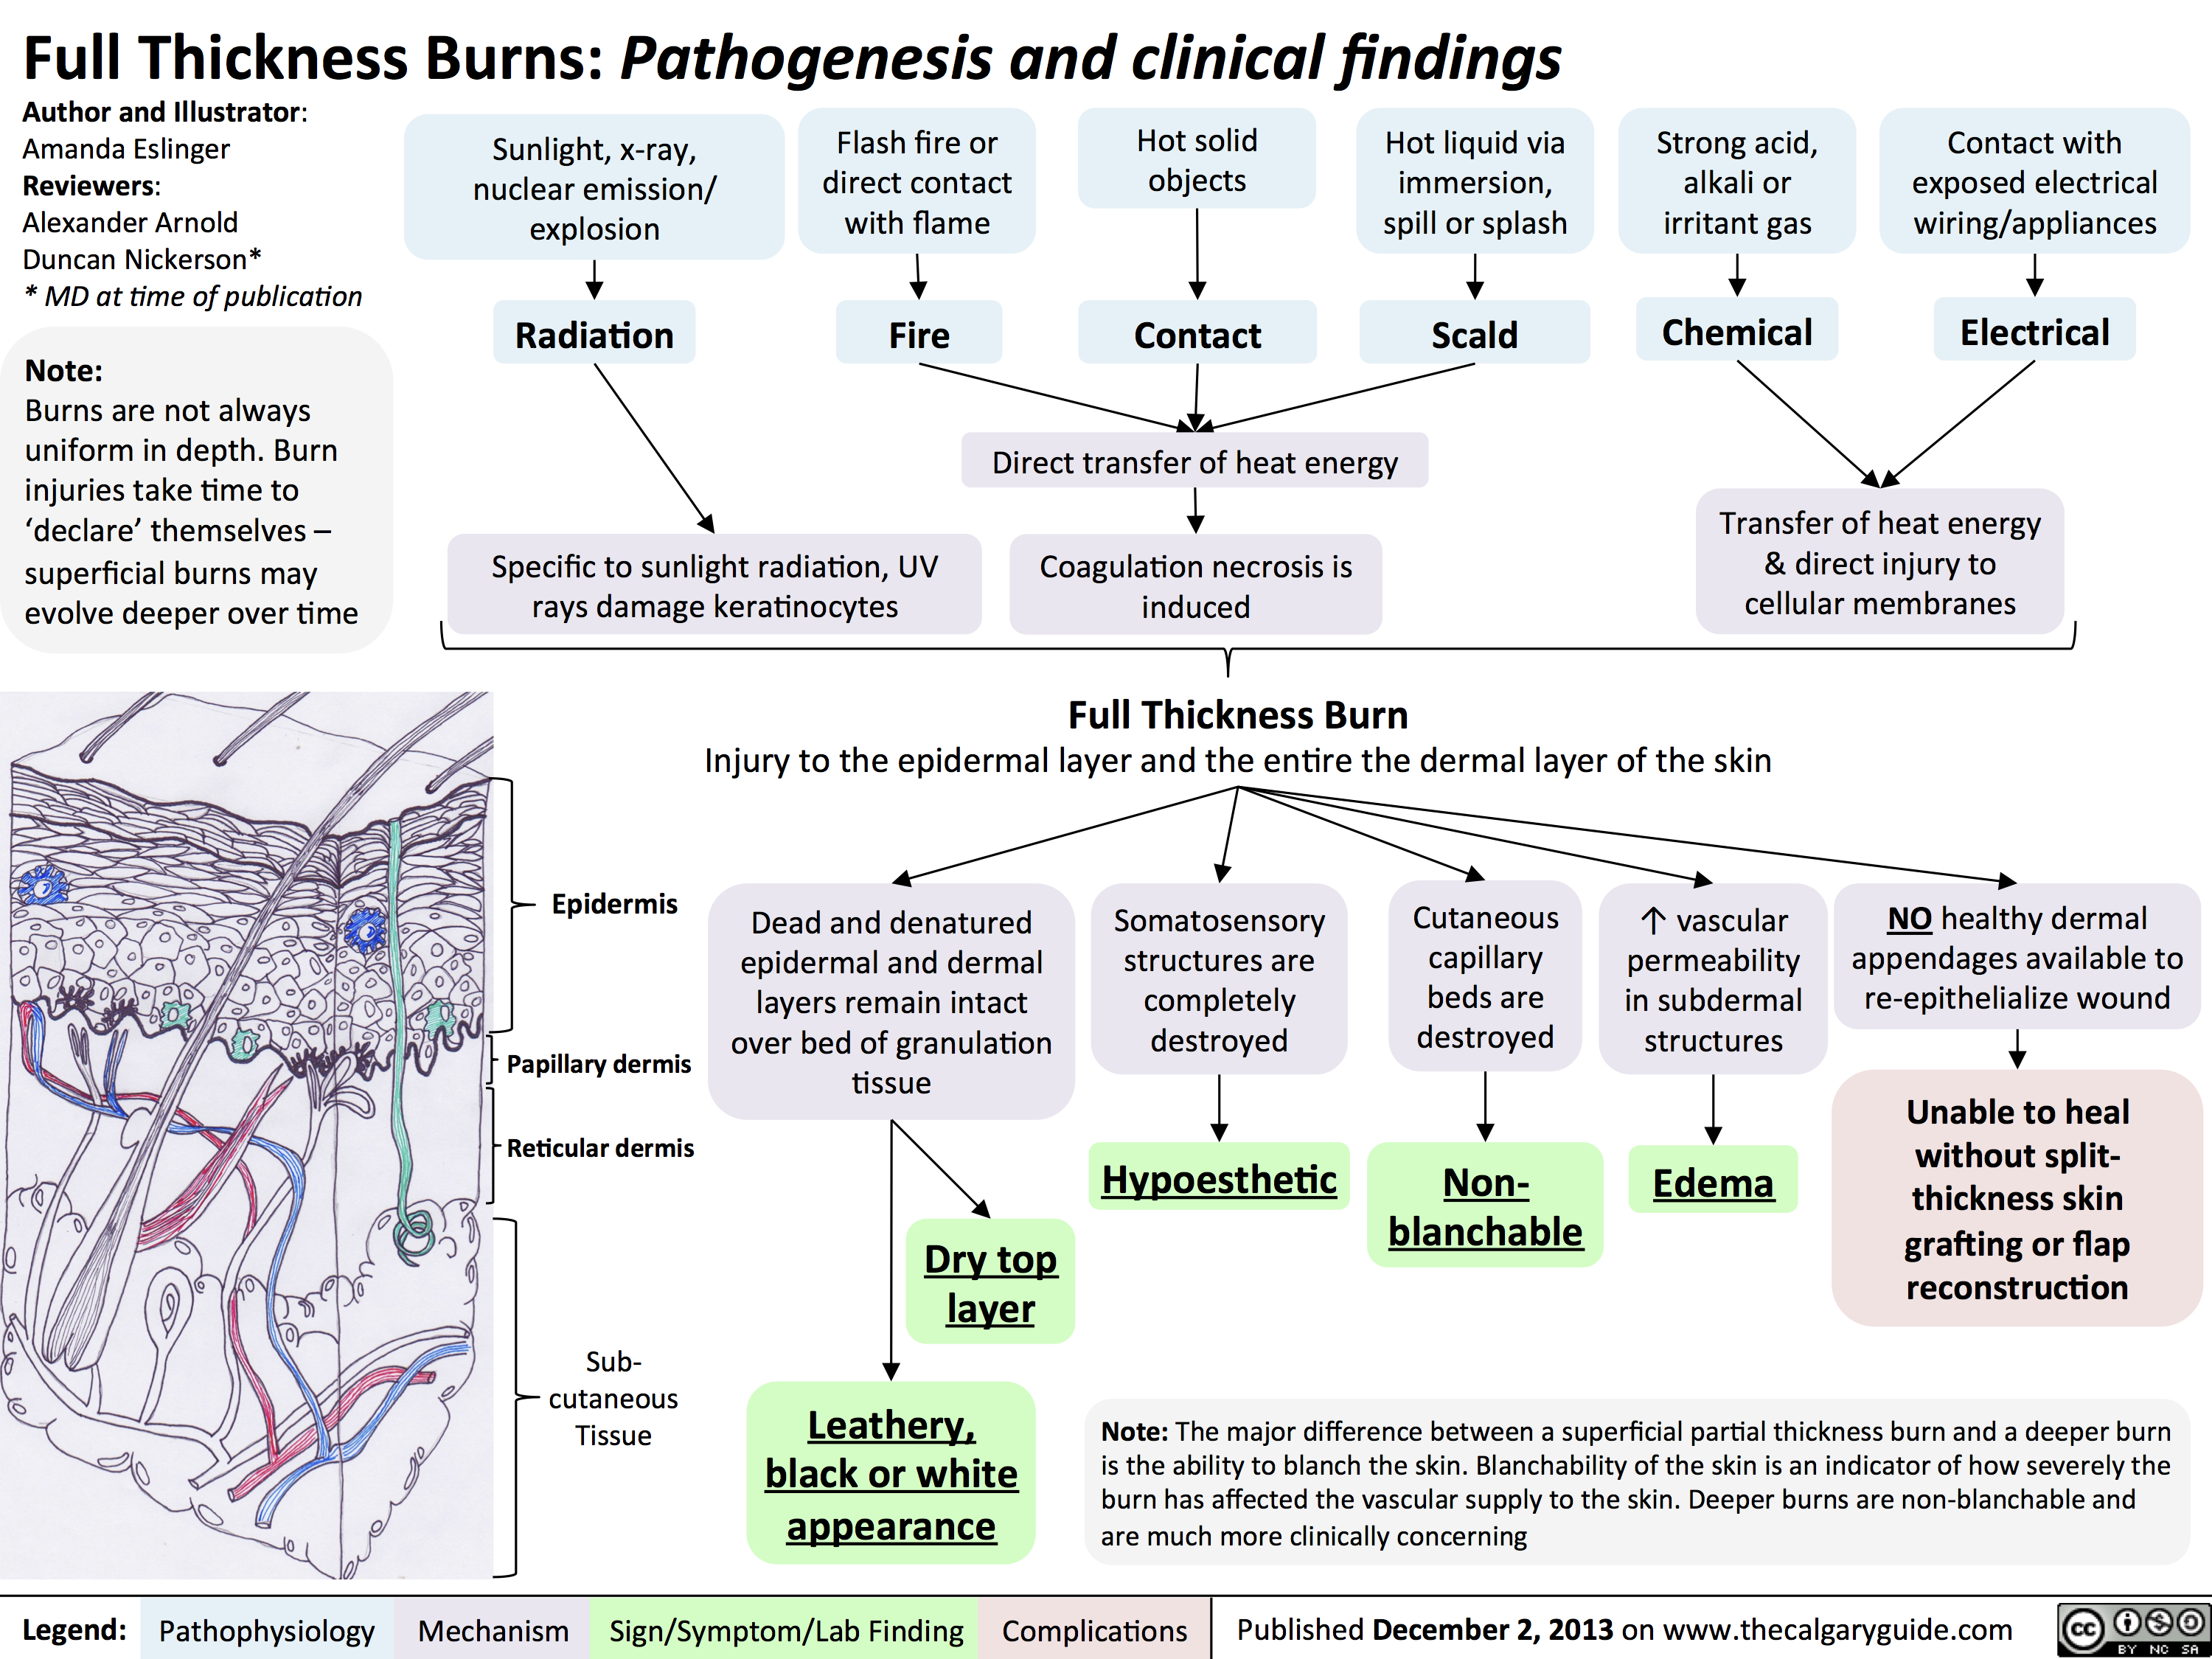 Full Thickness Burns - Pathogenesis and Clinical Findings